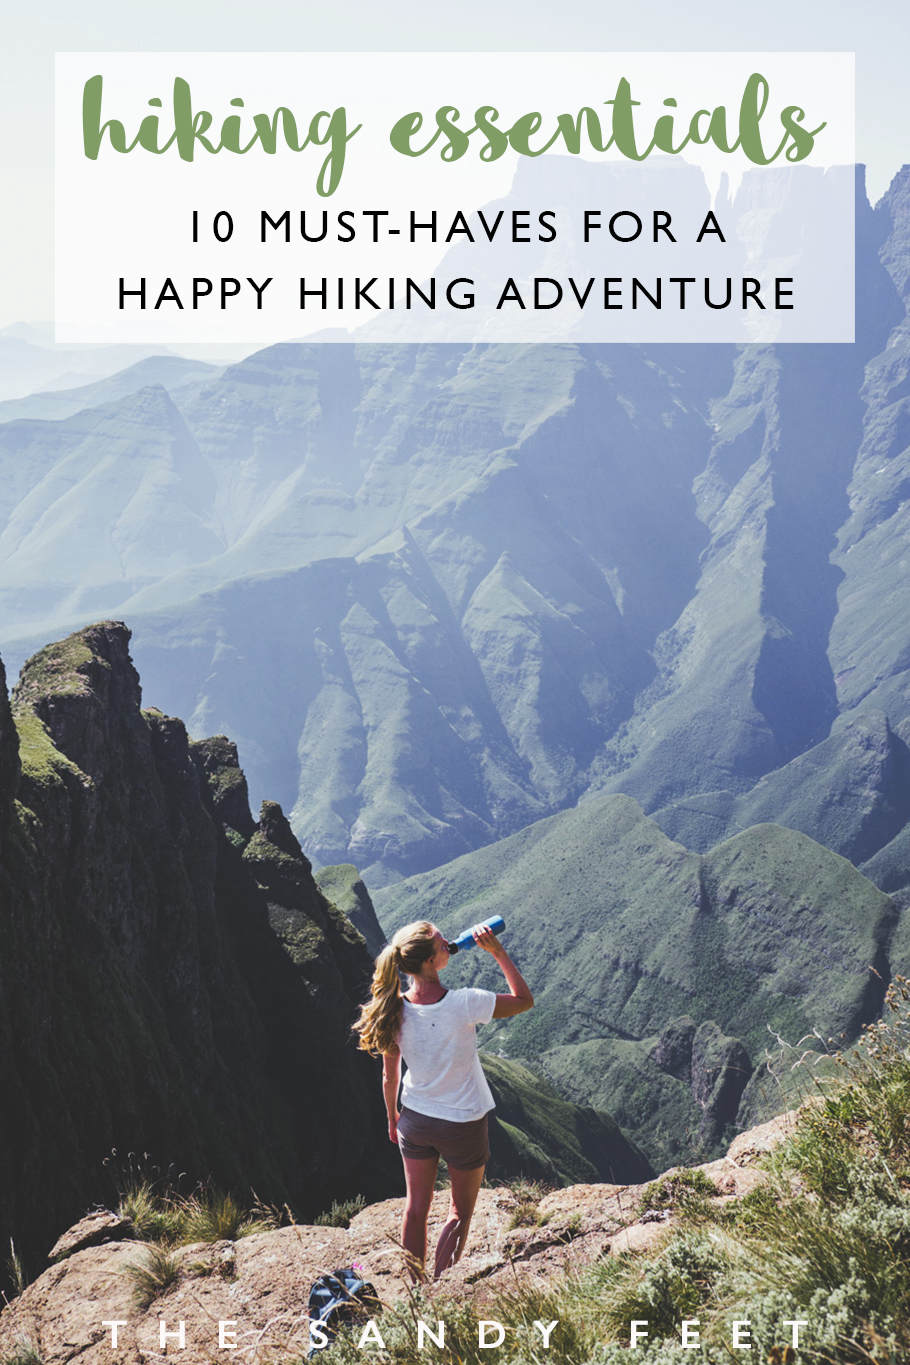 Hiking Packing List: 10 Must-Have Hiking Essentials For A Happy Hiking Trip